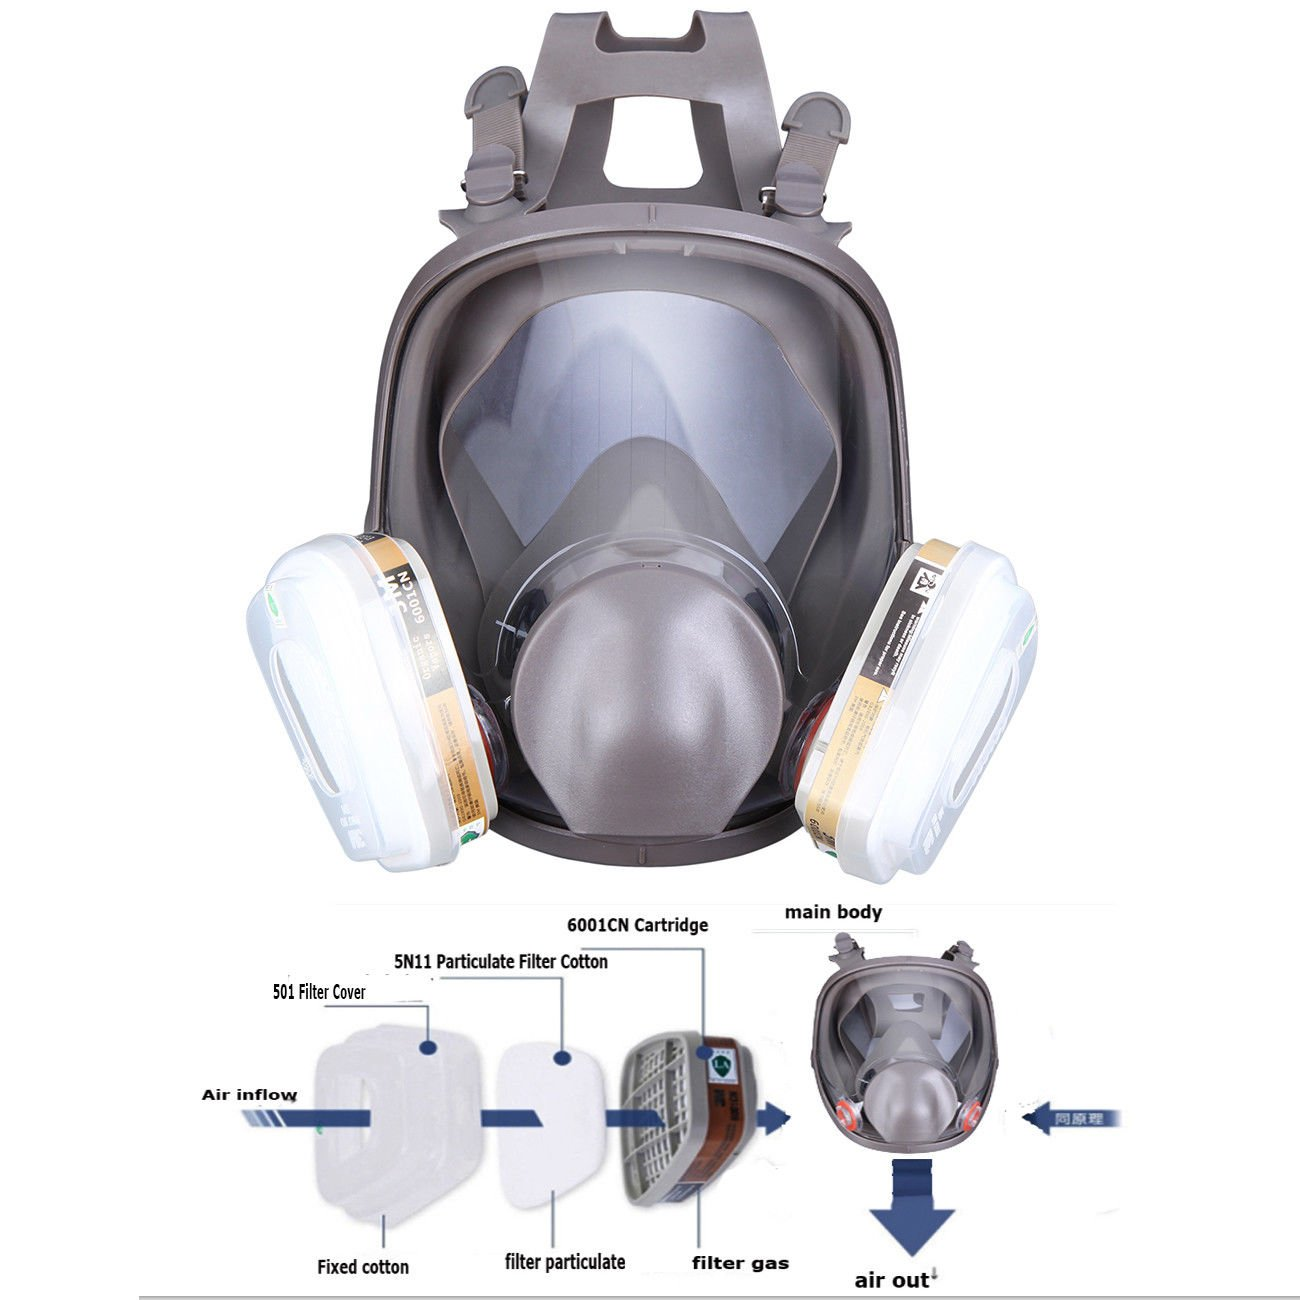 Yunge Full Face Respirator Gas Mask For 6800 Painting Spraying(15 in 1)Facepiece Respirator- Industrial Grade Quality by YungeEquipmentUS (Image #1)